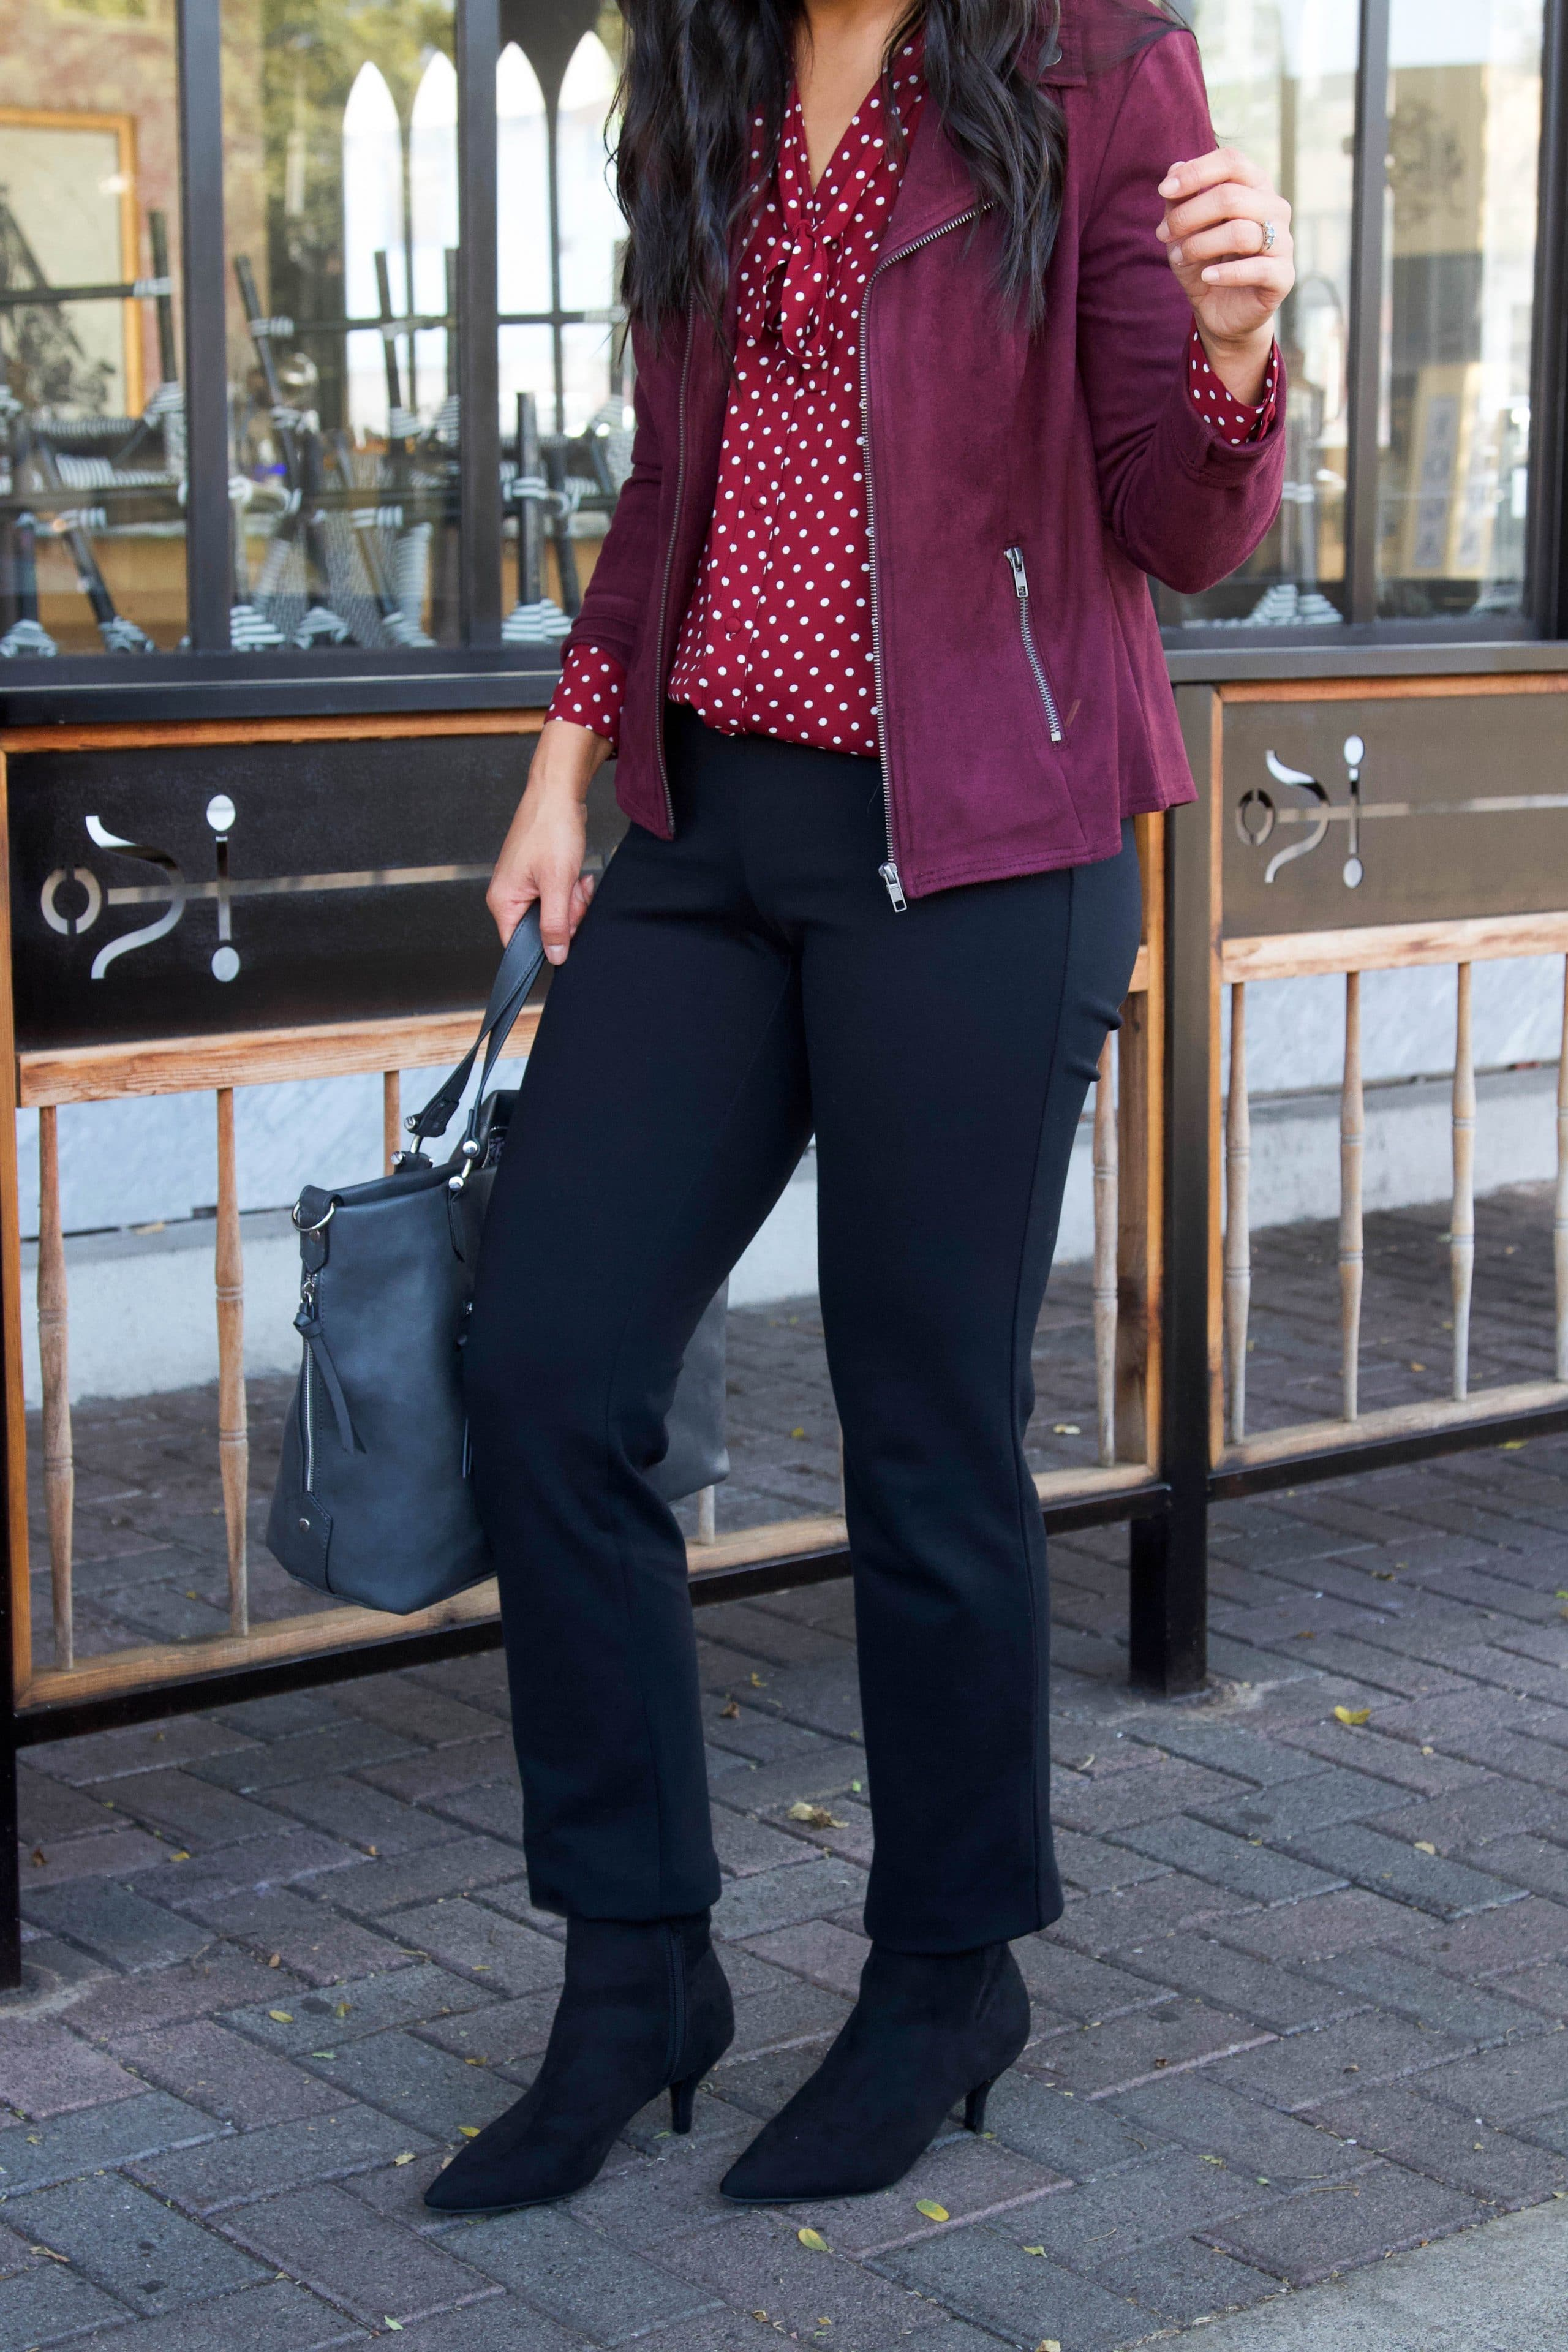 business casual outfit + maroon polka dot top + black straight pants + maroon moto jacket + black booties + grey purse